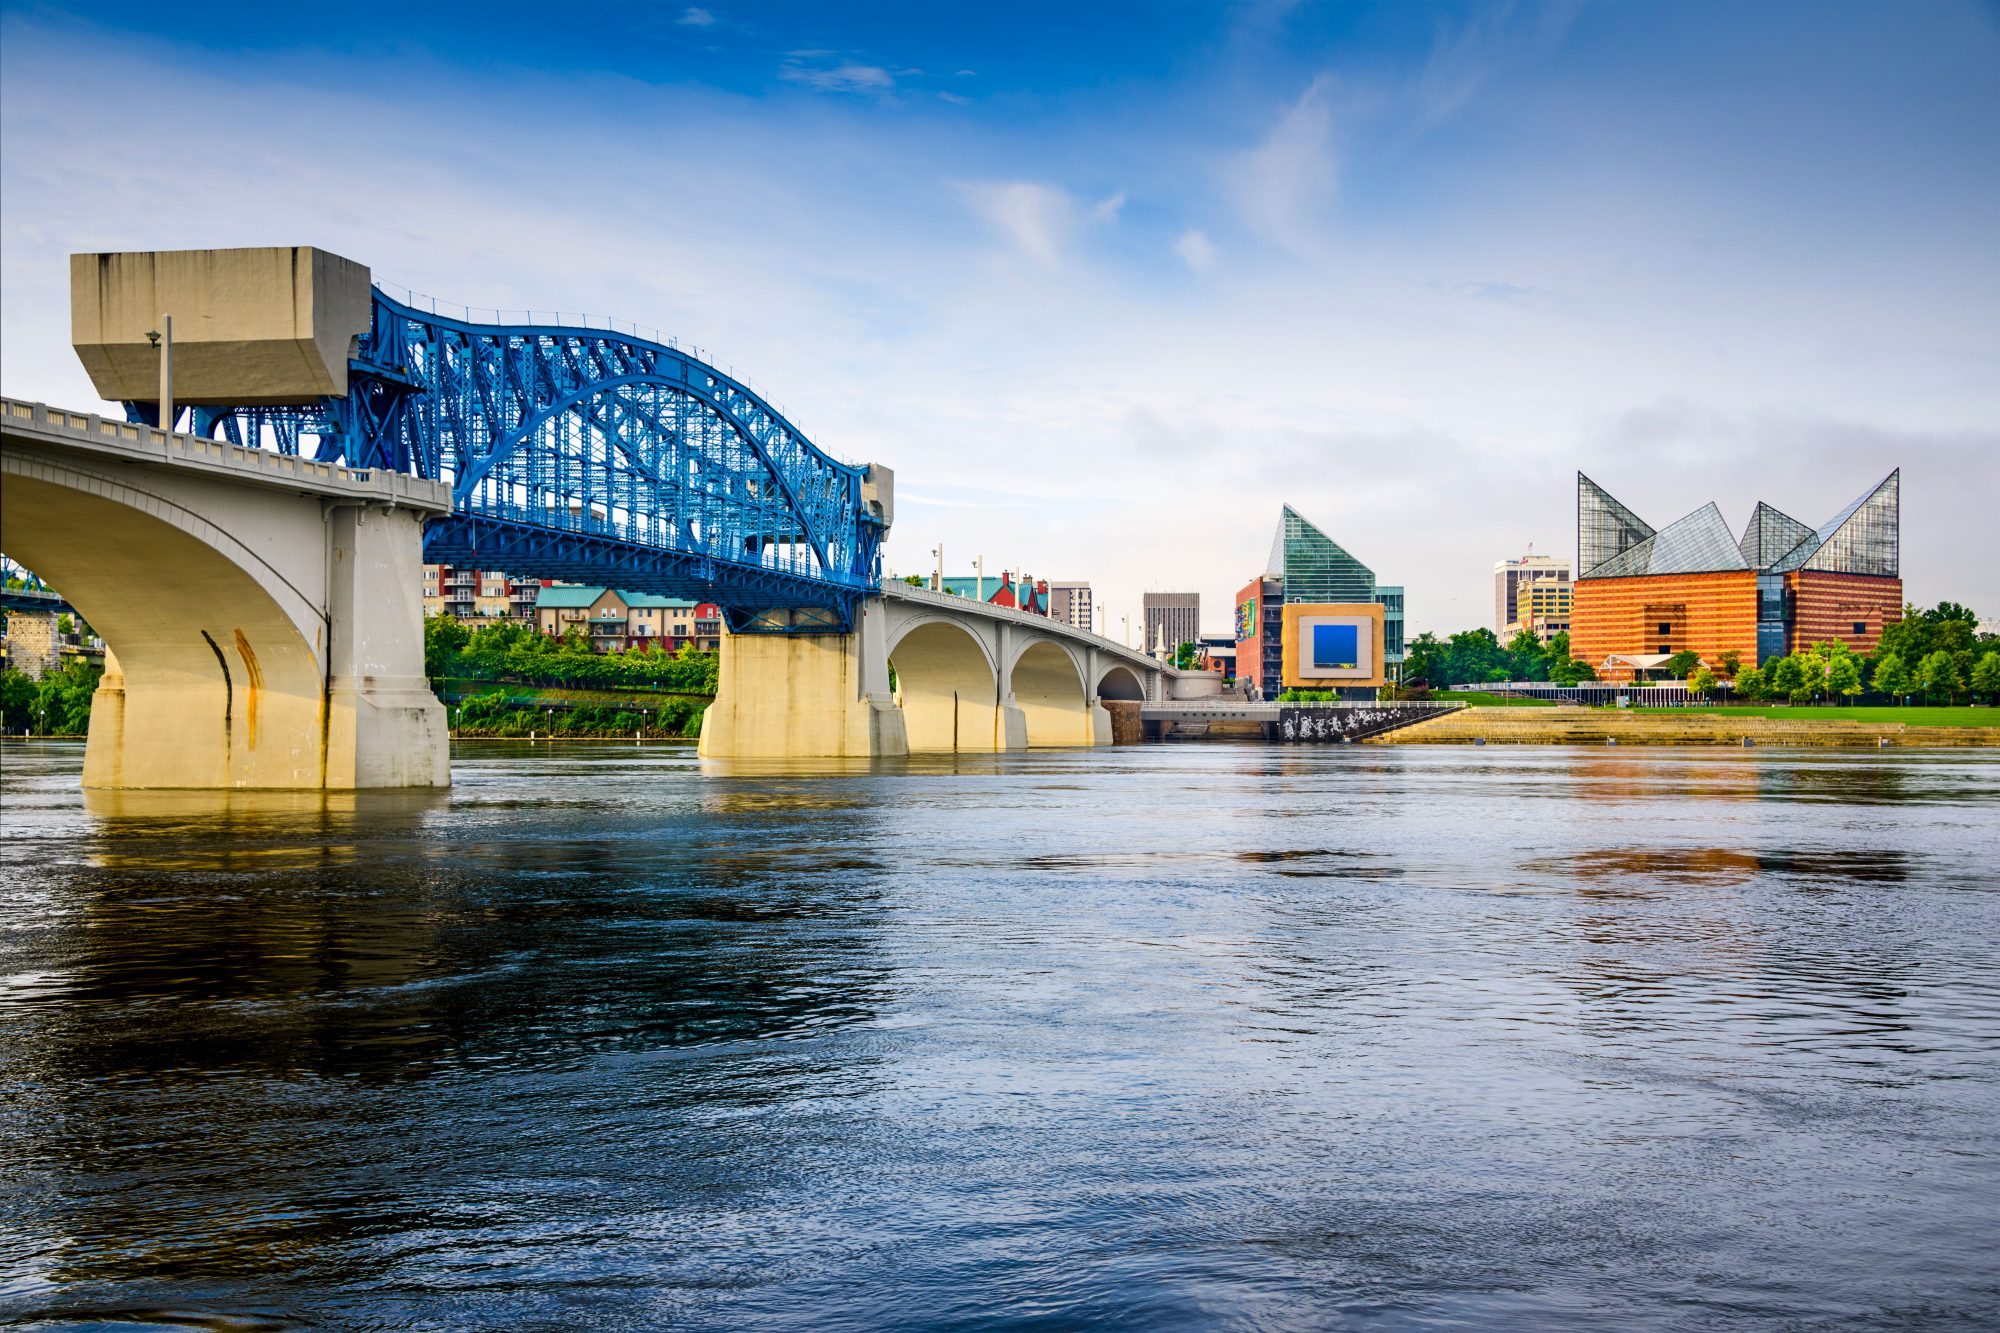 15 Things We Love About Chattanooga